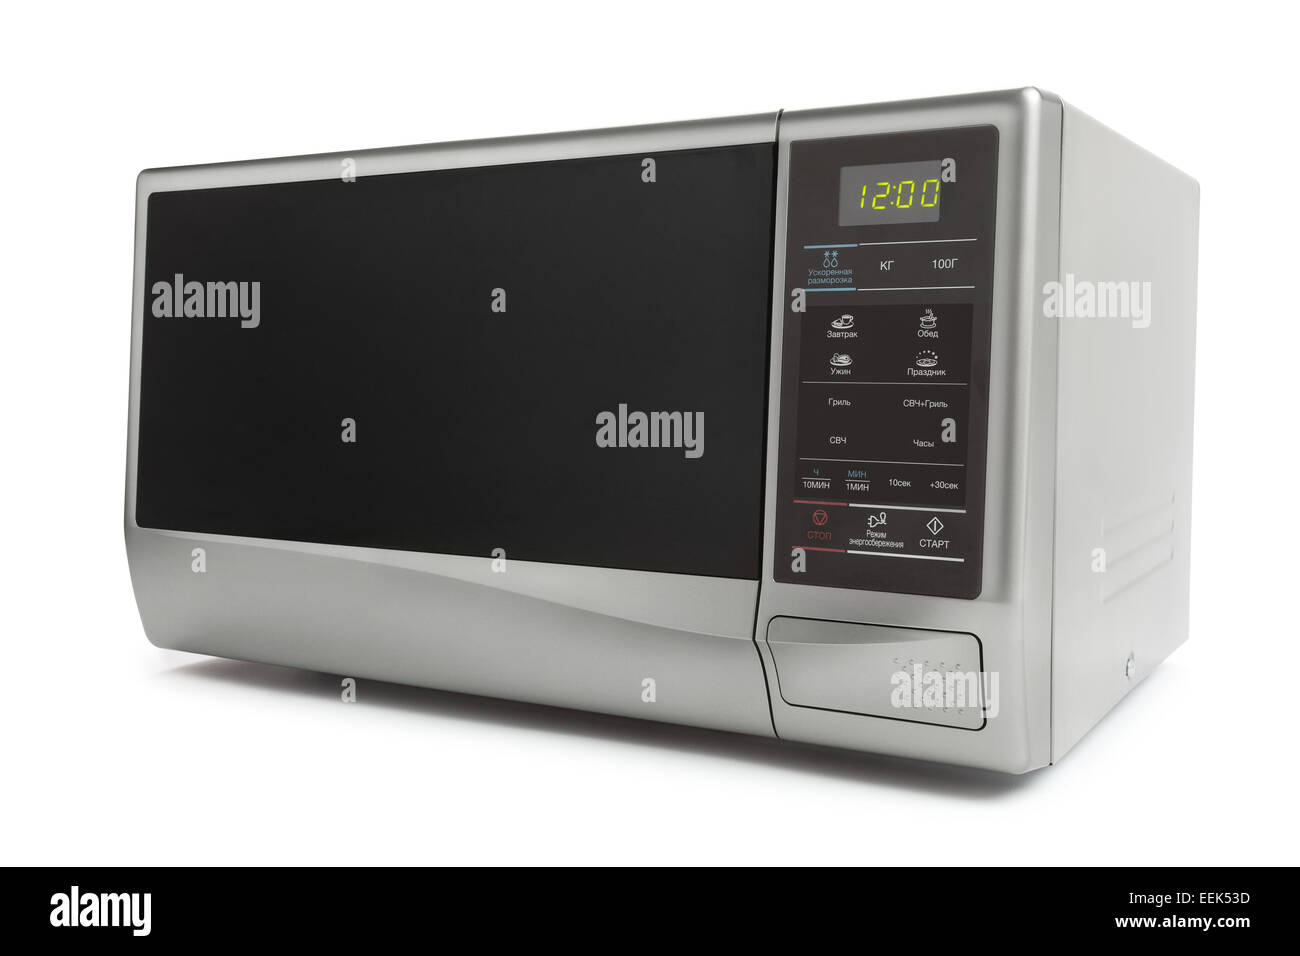 microwave oven isolated - Stock Image